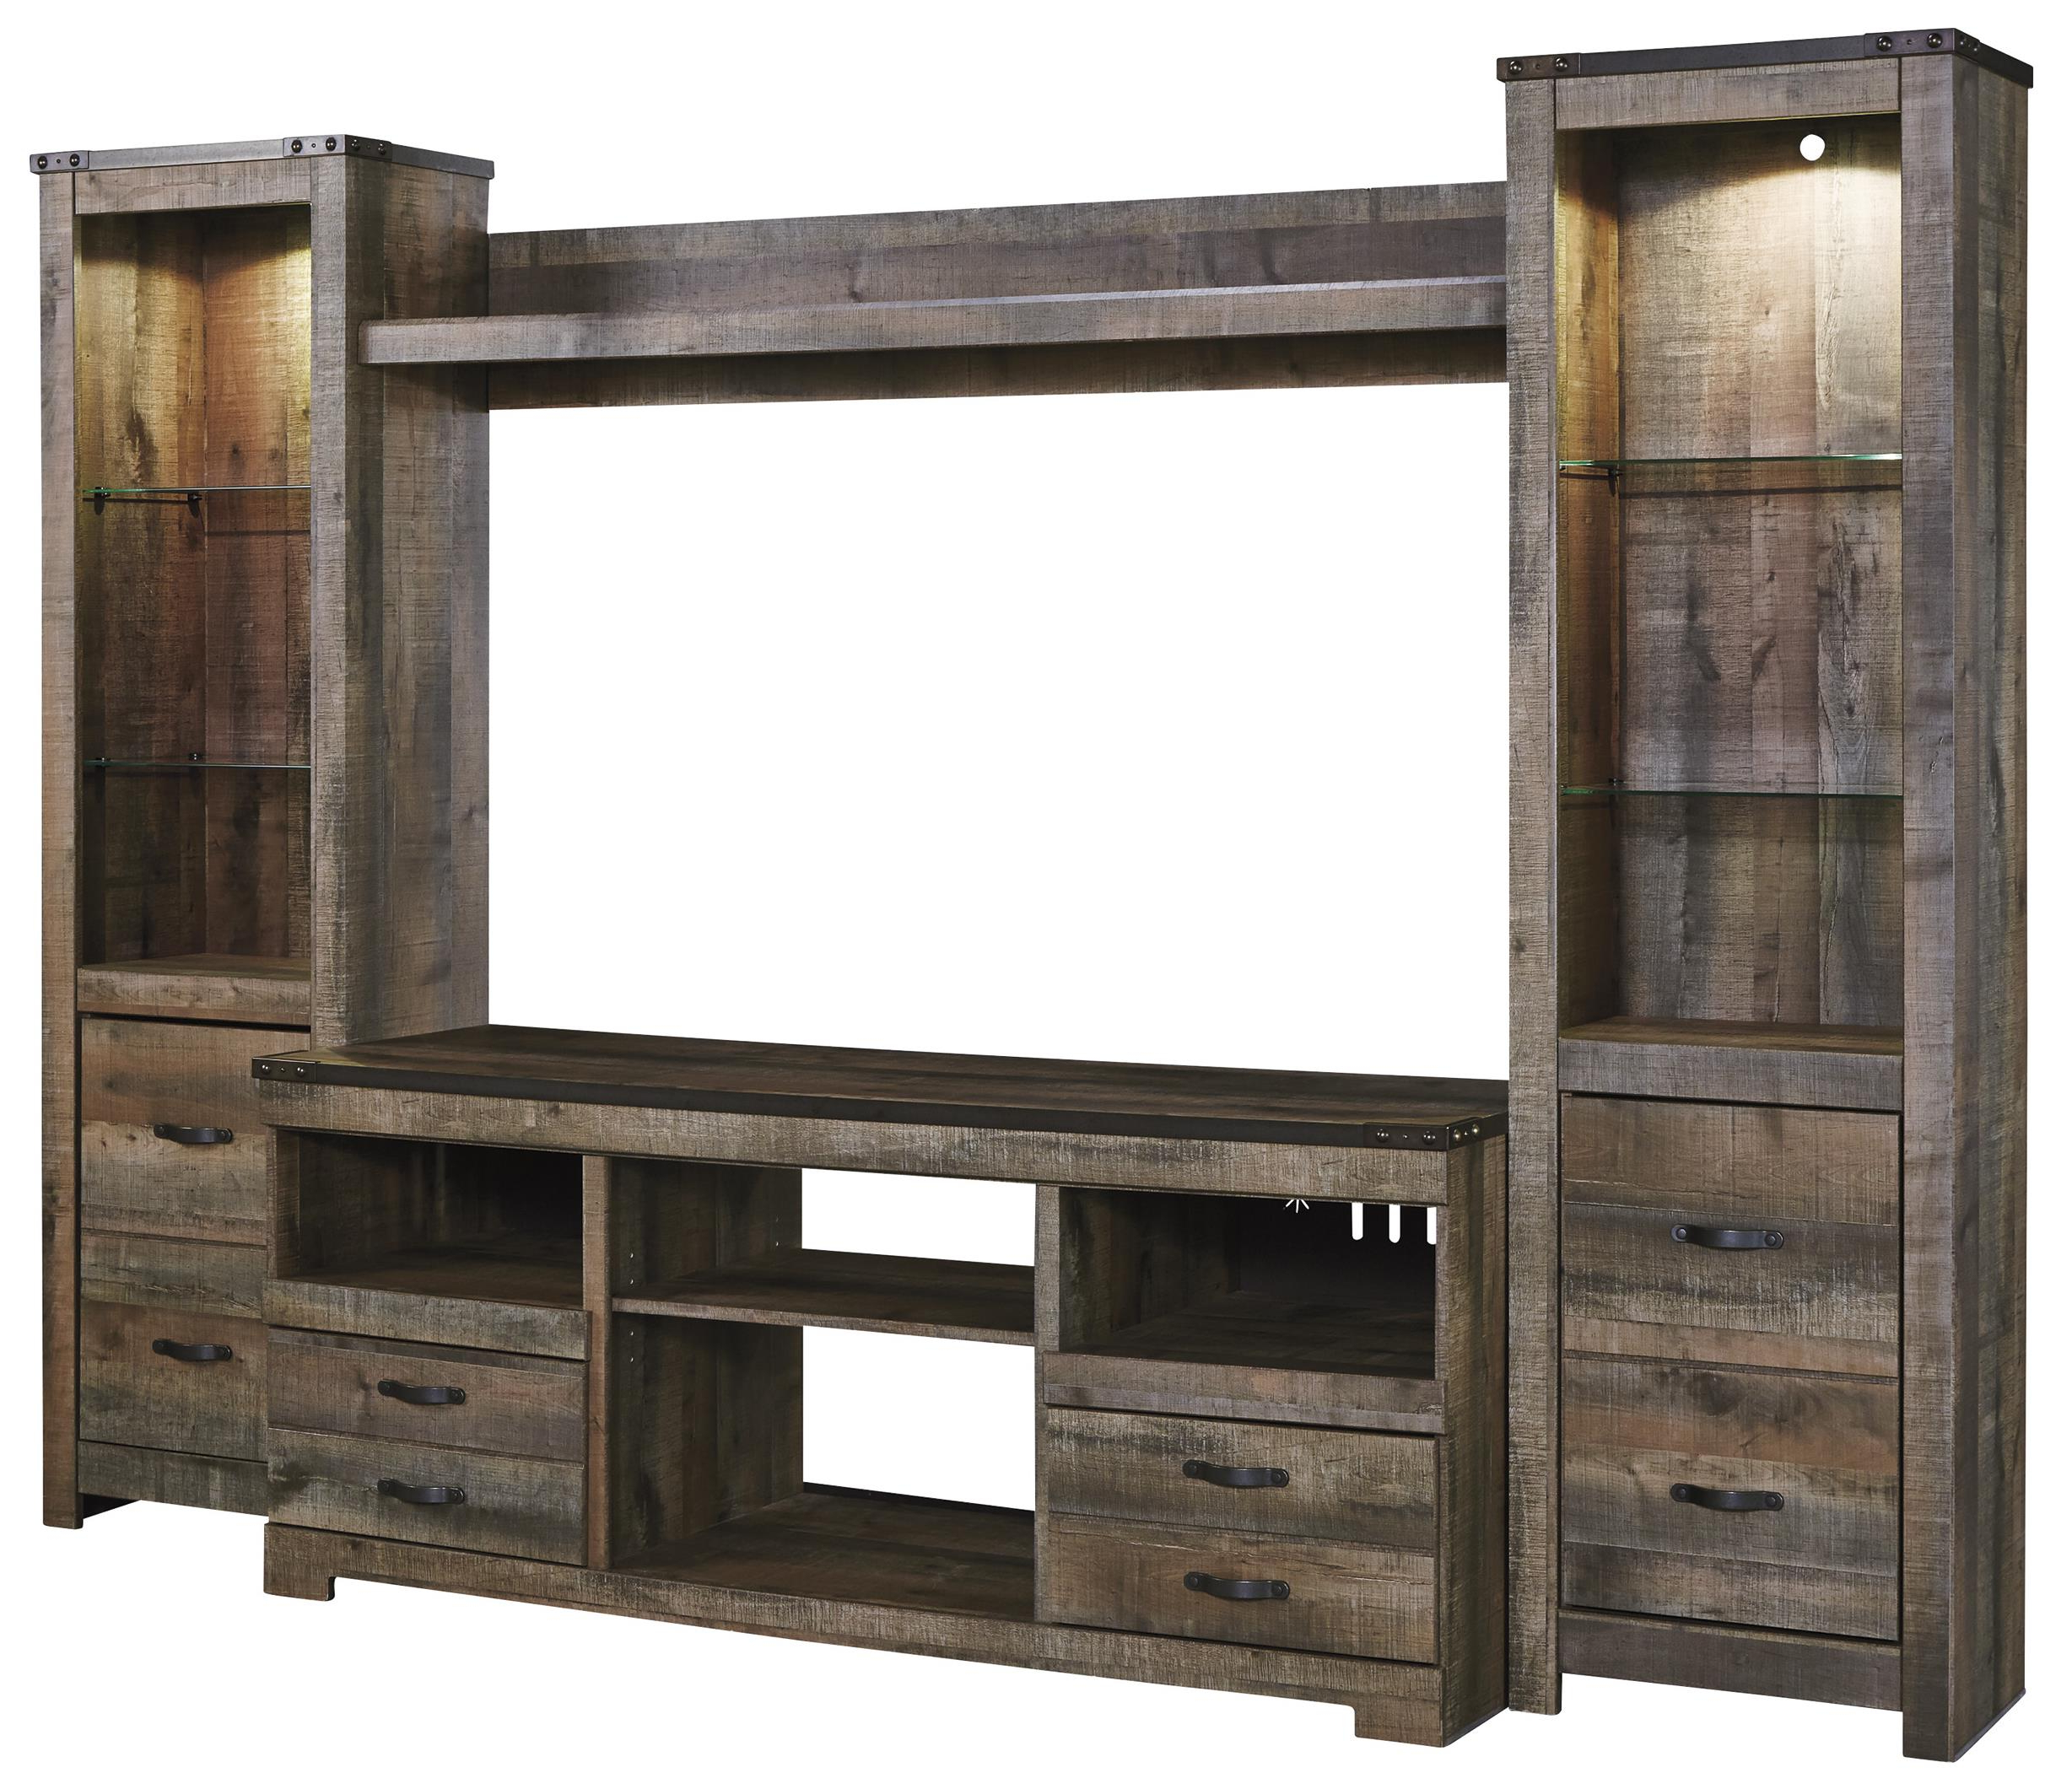 Urban Rustic Rustic Large Tv Stand & 2 Tall Piers W/ Bridge Inside Most Recently Released Cheap Rustic Tv Stands (View 19 of 20)